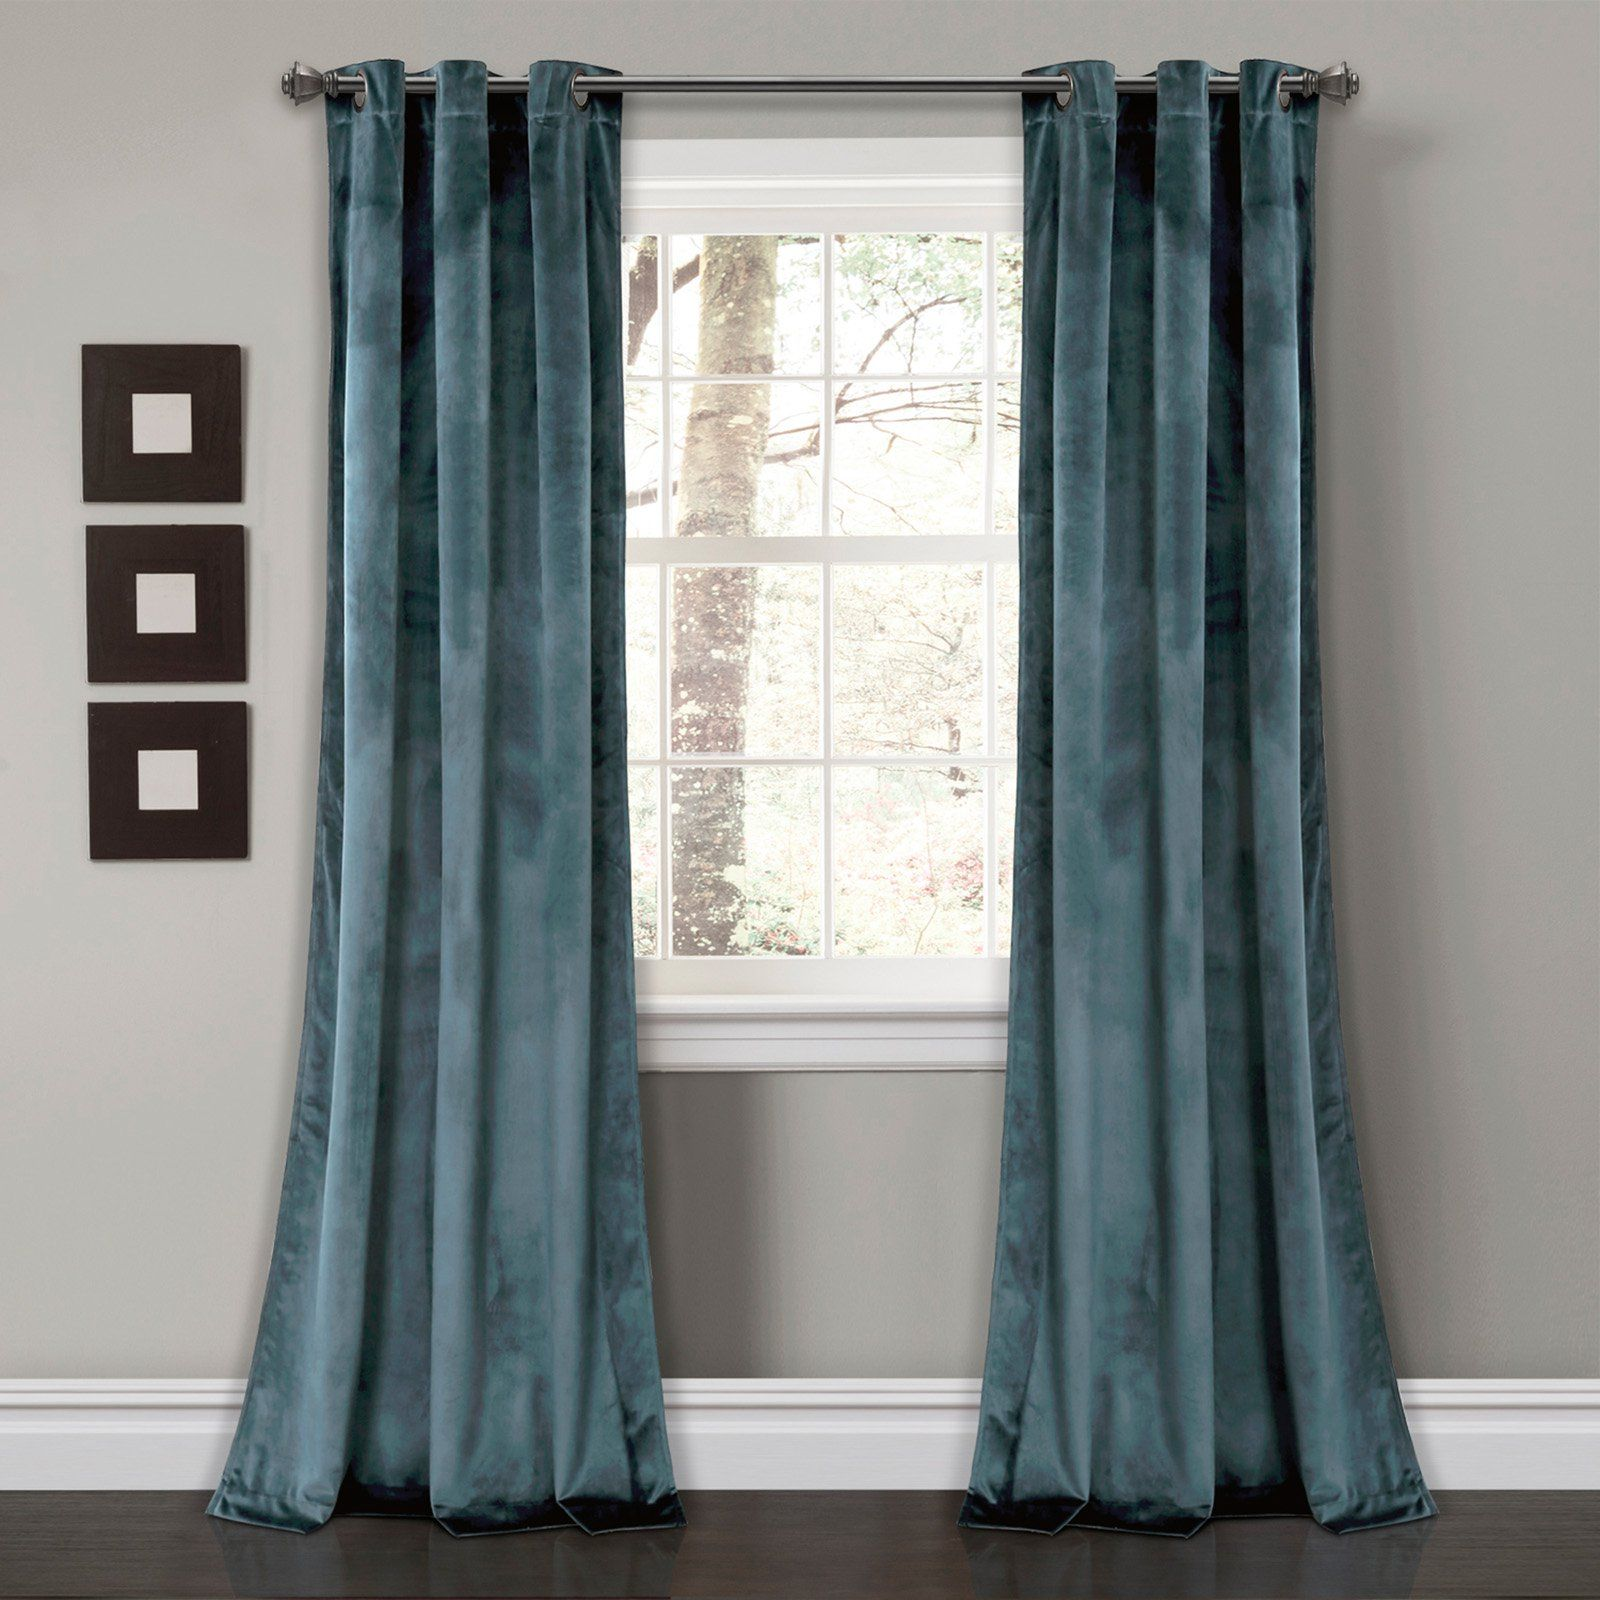 Lush Decor Prima Velvet Solid Room Darkening Window Curtain Slate Blue